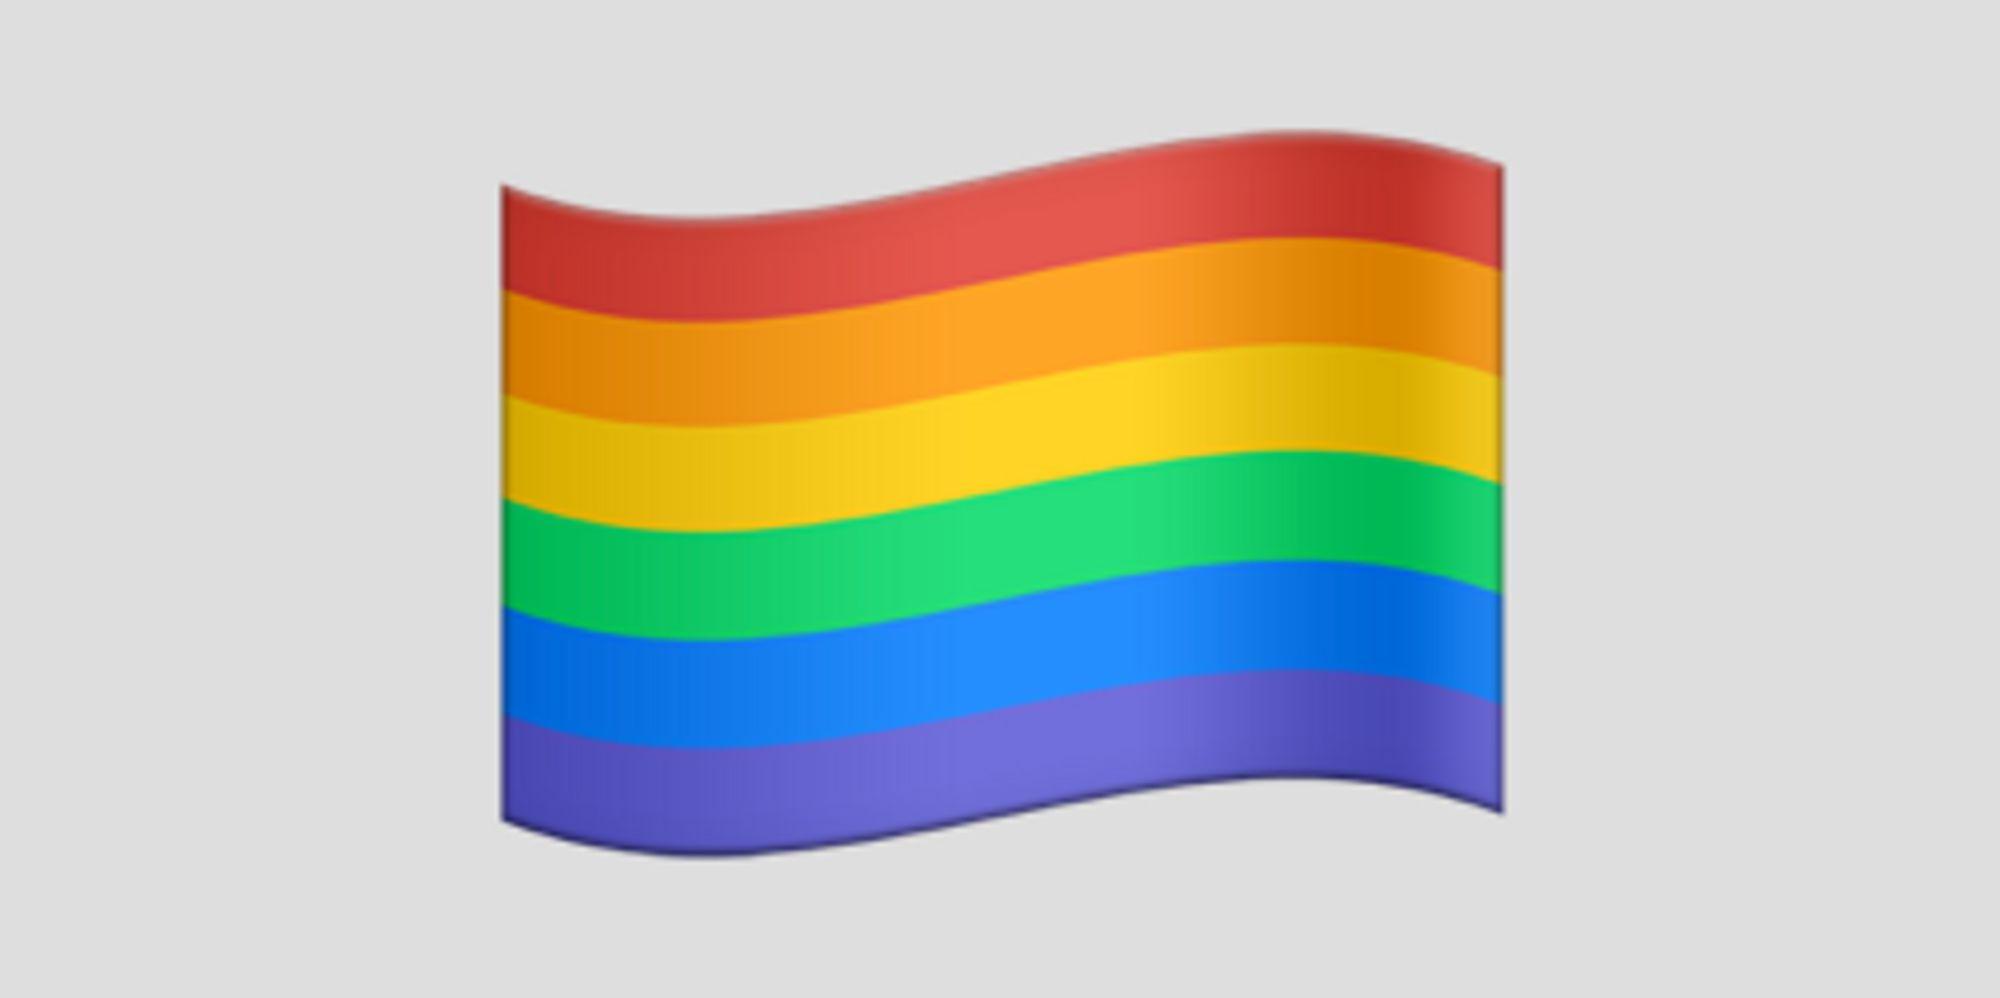 Apple Just Unveiled A Rainbow Flag Emoji For Fall 2016 | The ...